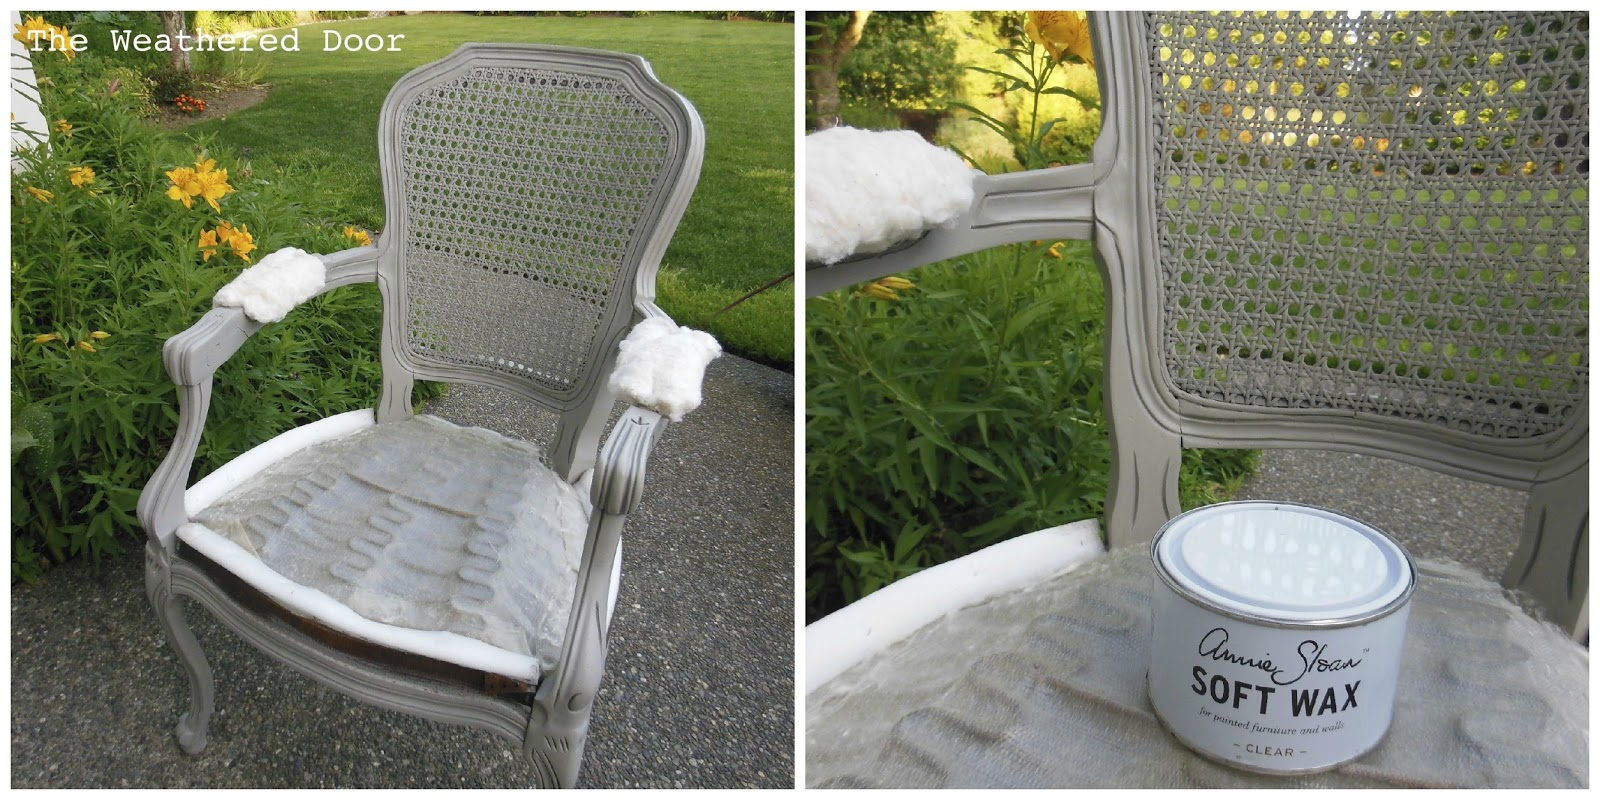 How to reupholster a louis chair - For The Fabric I Used A Neutral Tan Cream Colored Fabric I Got At A Garage Sale For 1 And There Is A Ton Of It We Laid Out The Old Fabric And